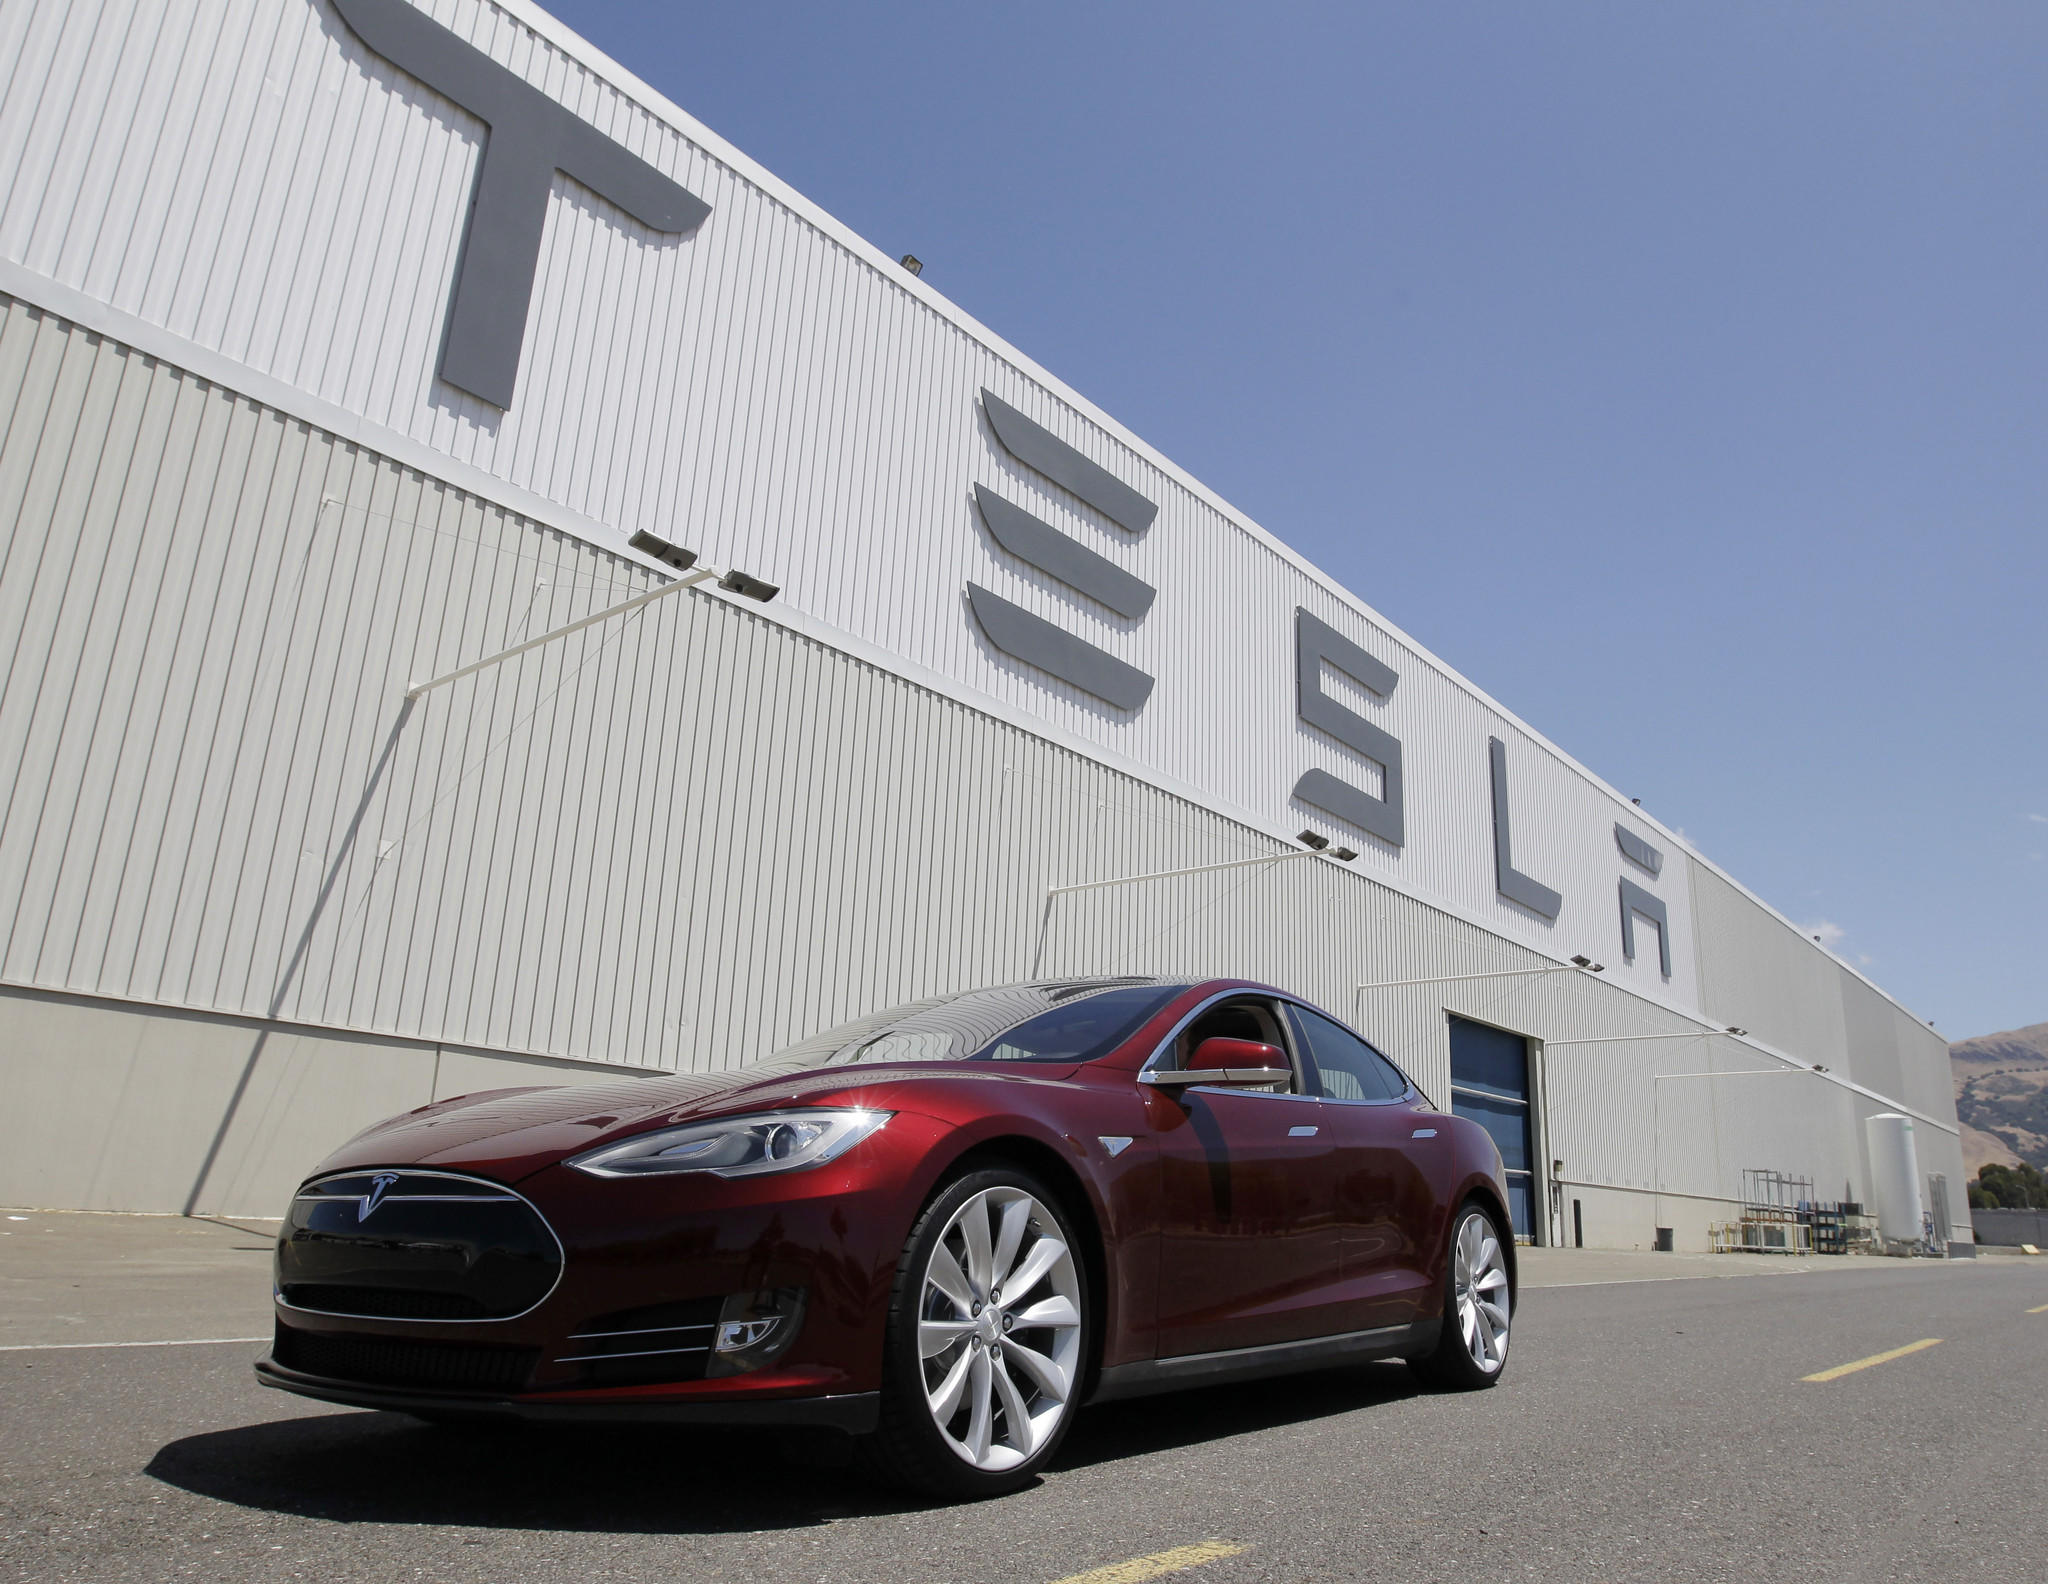 A Tesla Model S waits outside the Tesla factory in Fremont, Calif. Rumors are swirling that Tesla will begin making more cars in California at a facility the company has leased east of San Francisco in Lathrop.